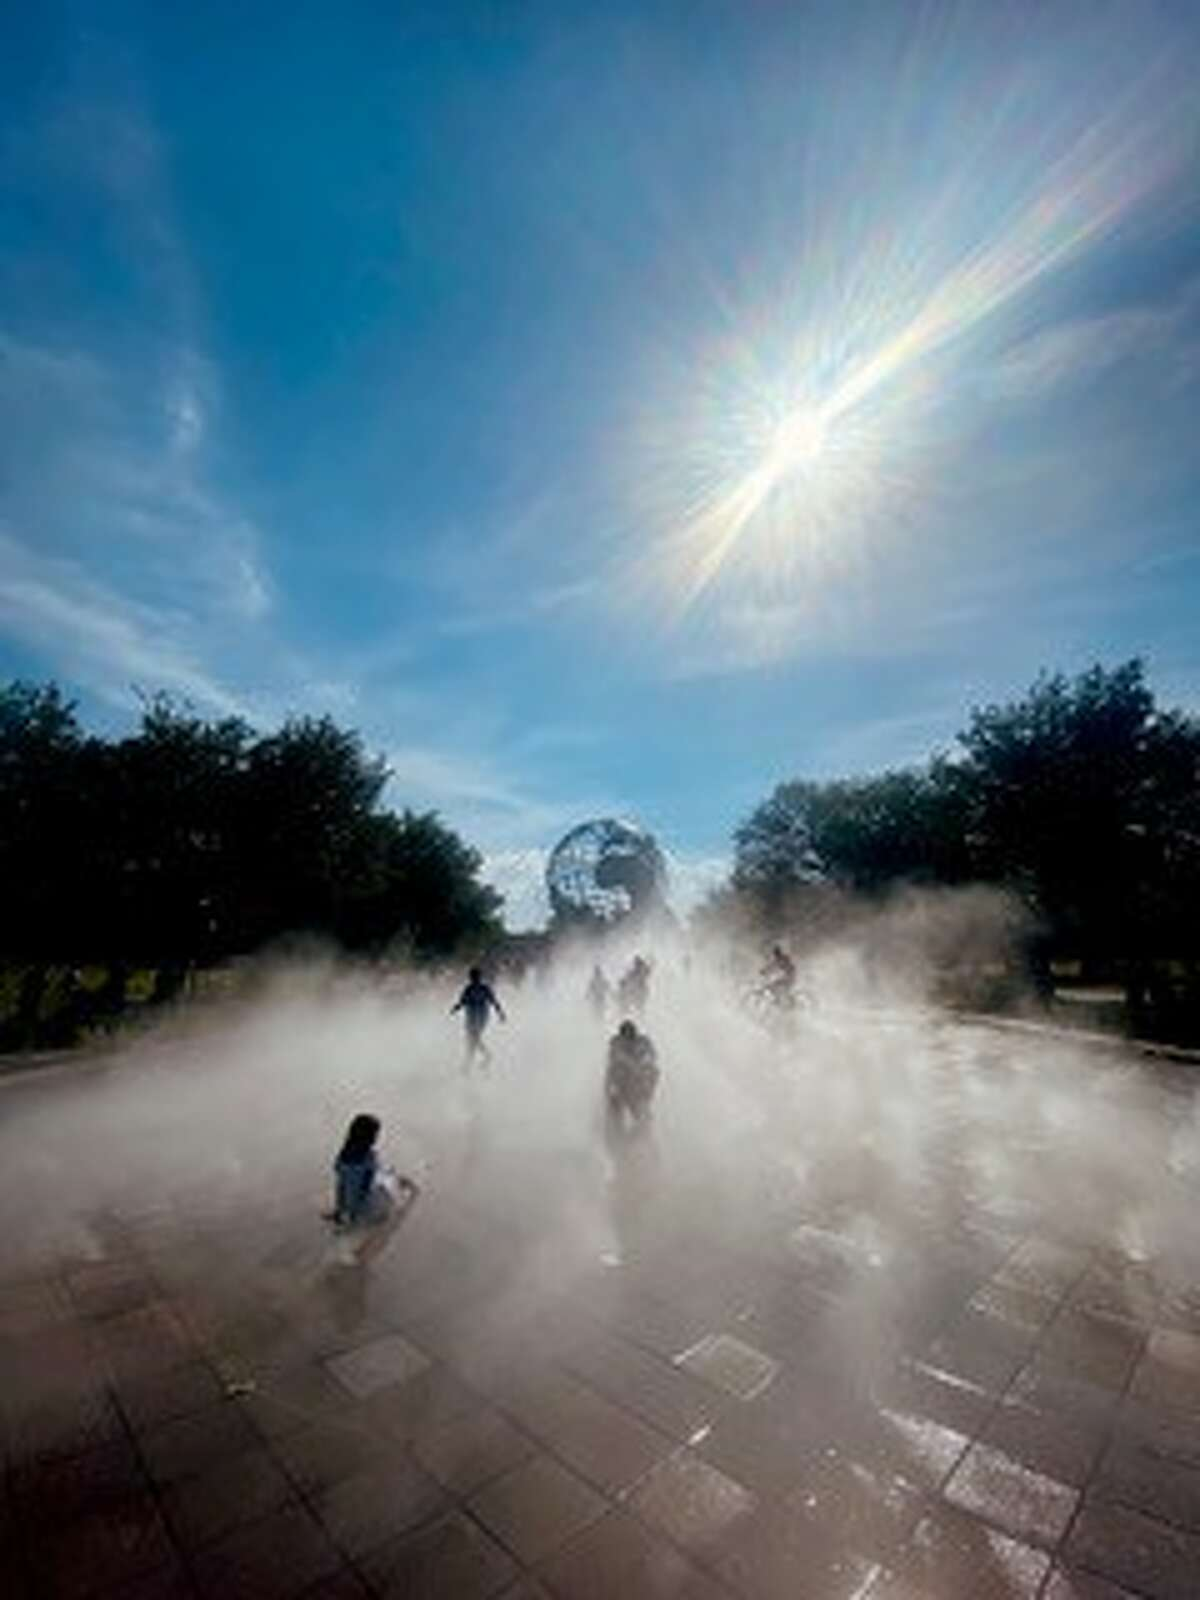 Here is a picture of people staying cool at the new mist pad in Flushing Meadows Corona Park yesterday, June 27 taken by Mary Rose Kaddo, a Troy transplant.